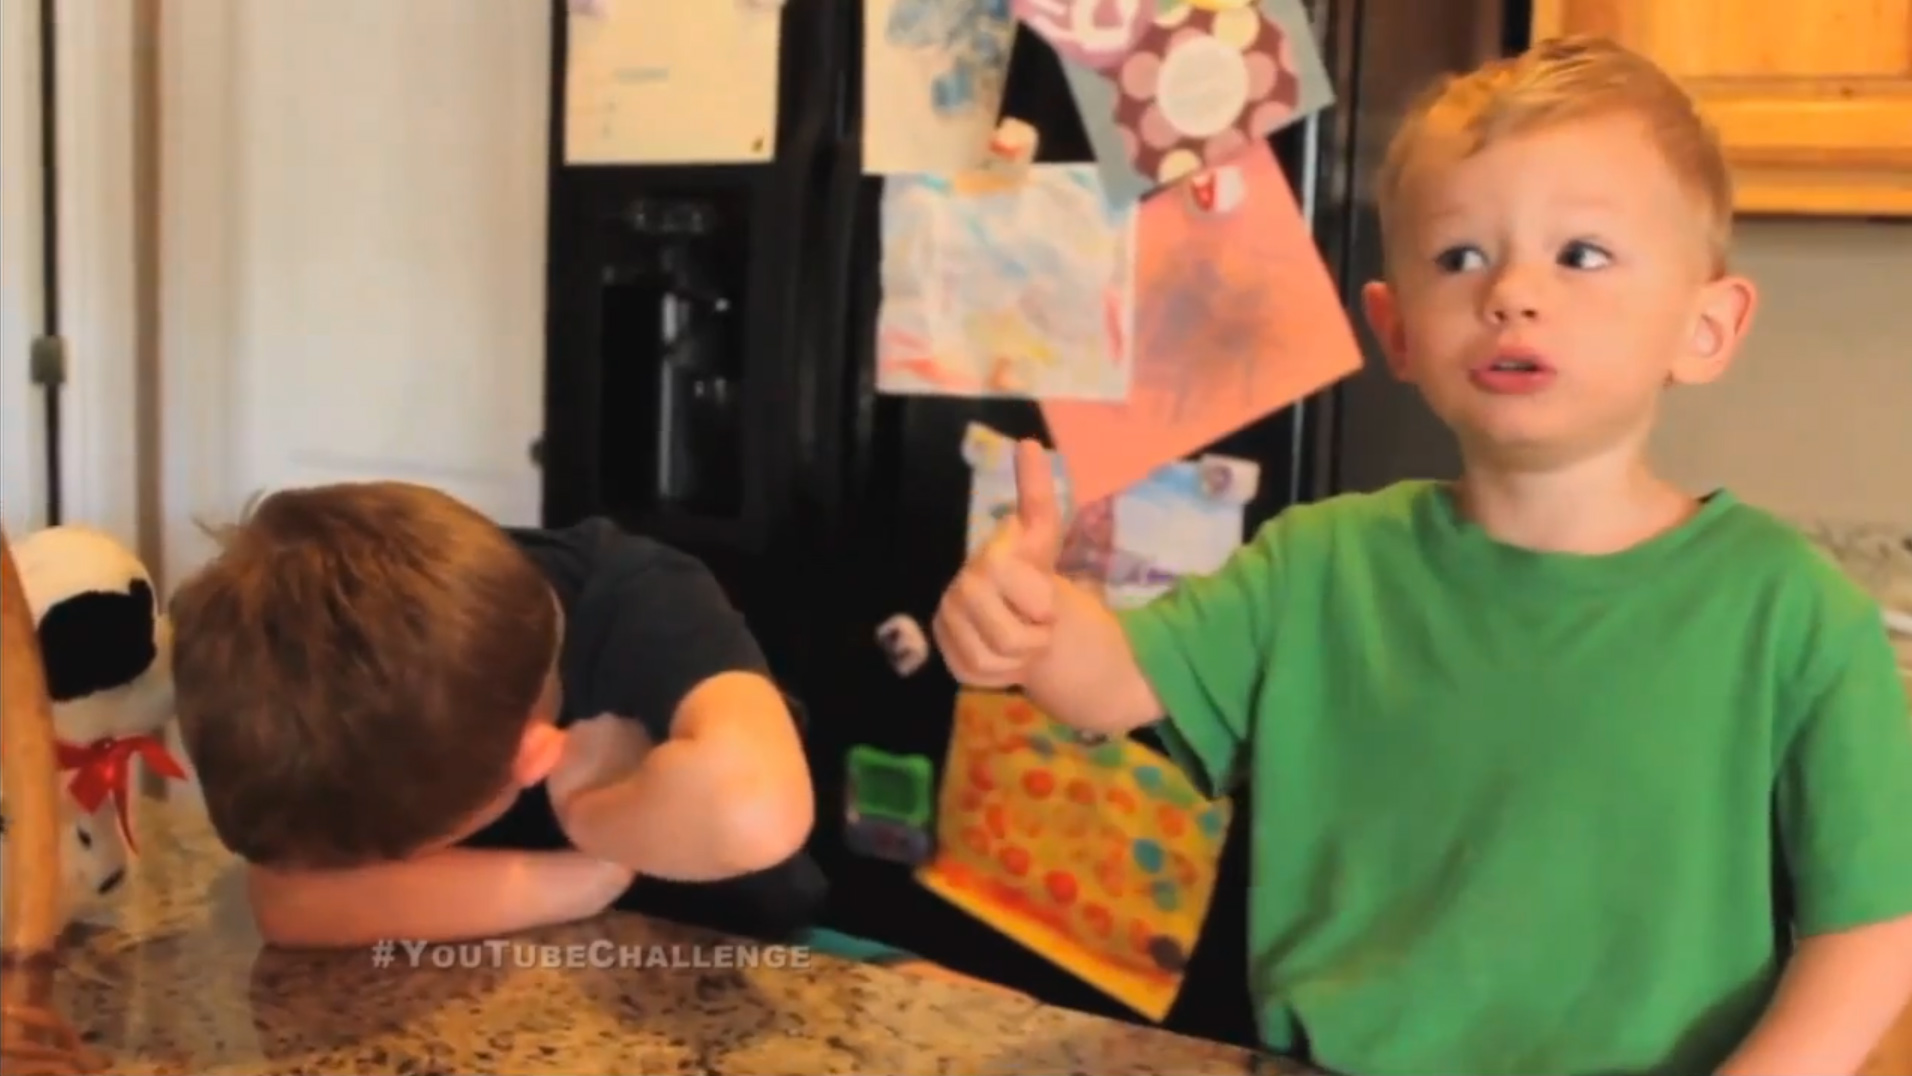 jimmy-kimmel-halloween-prank-parents-tell-kids-they-ate-all-their-candy.jpg